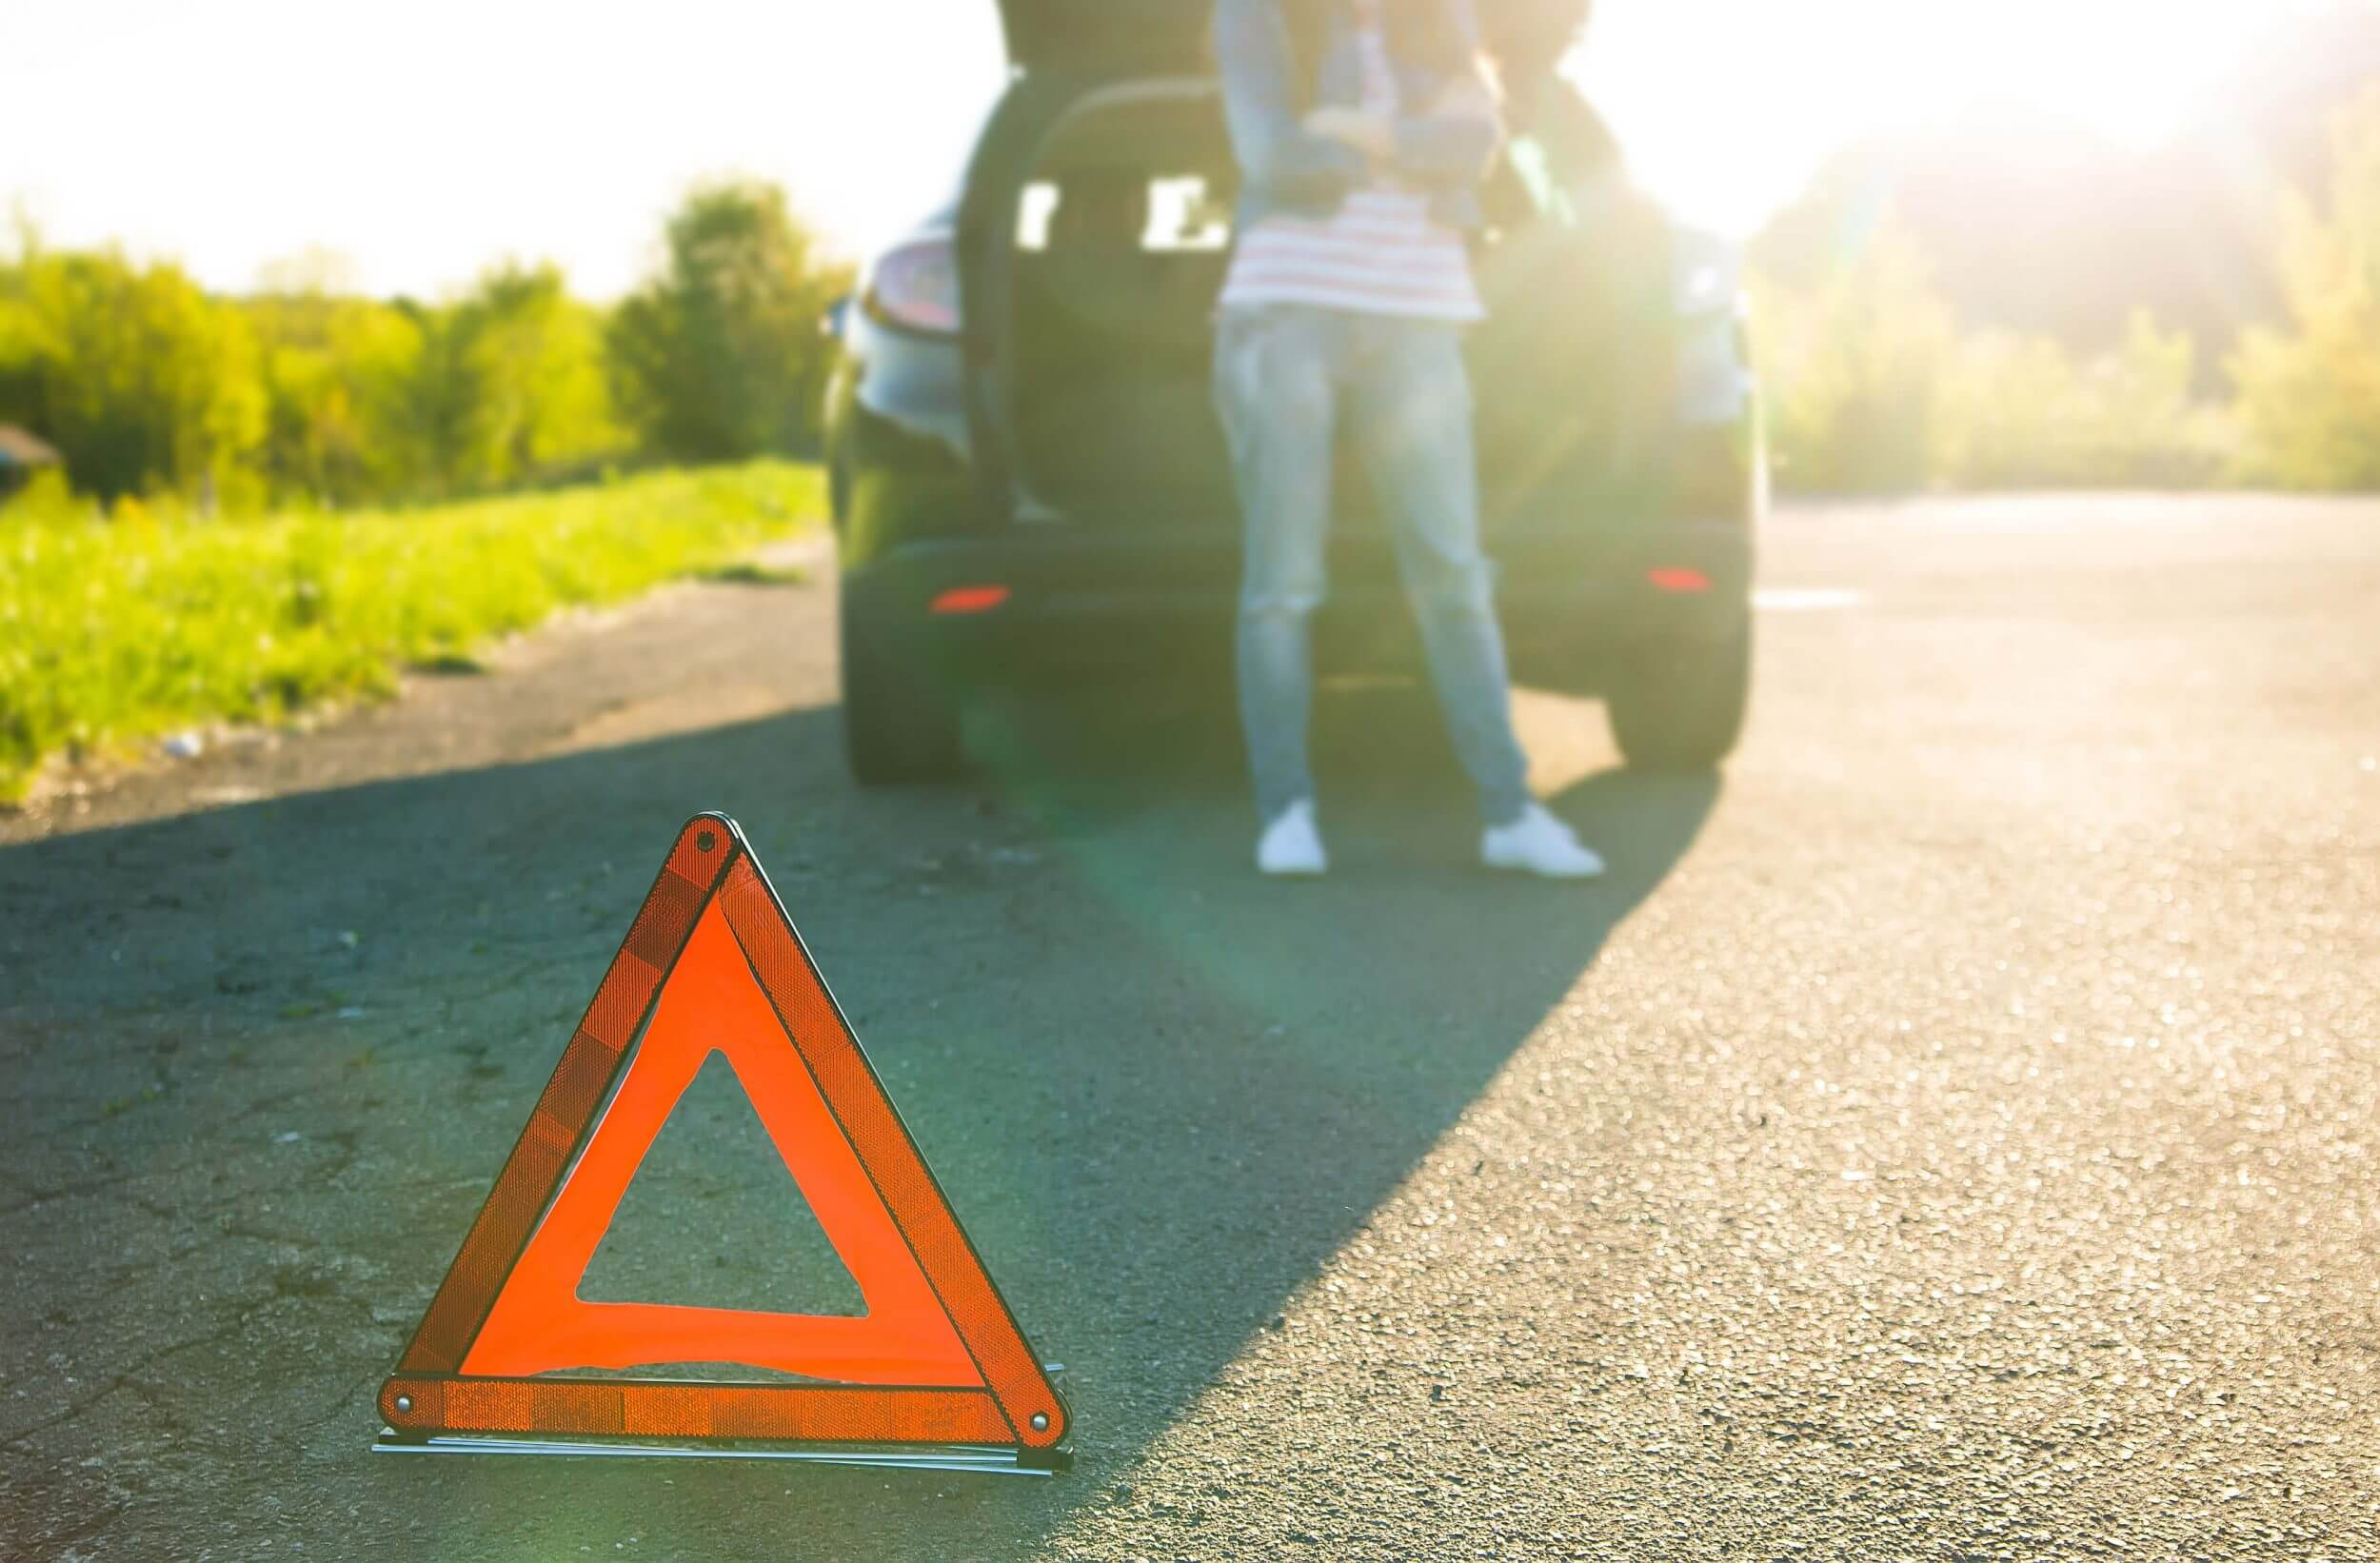 Warning triangle by brokendown car